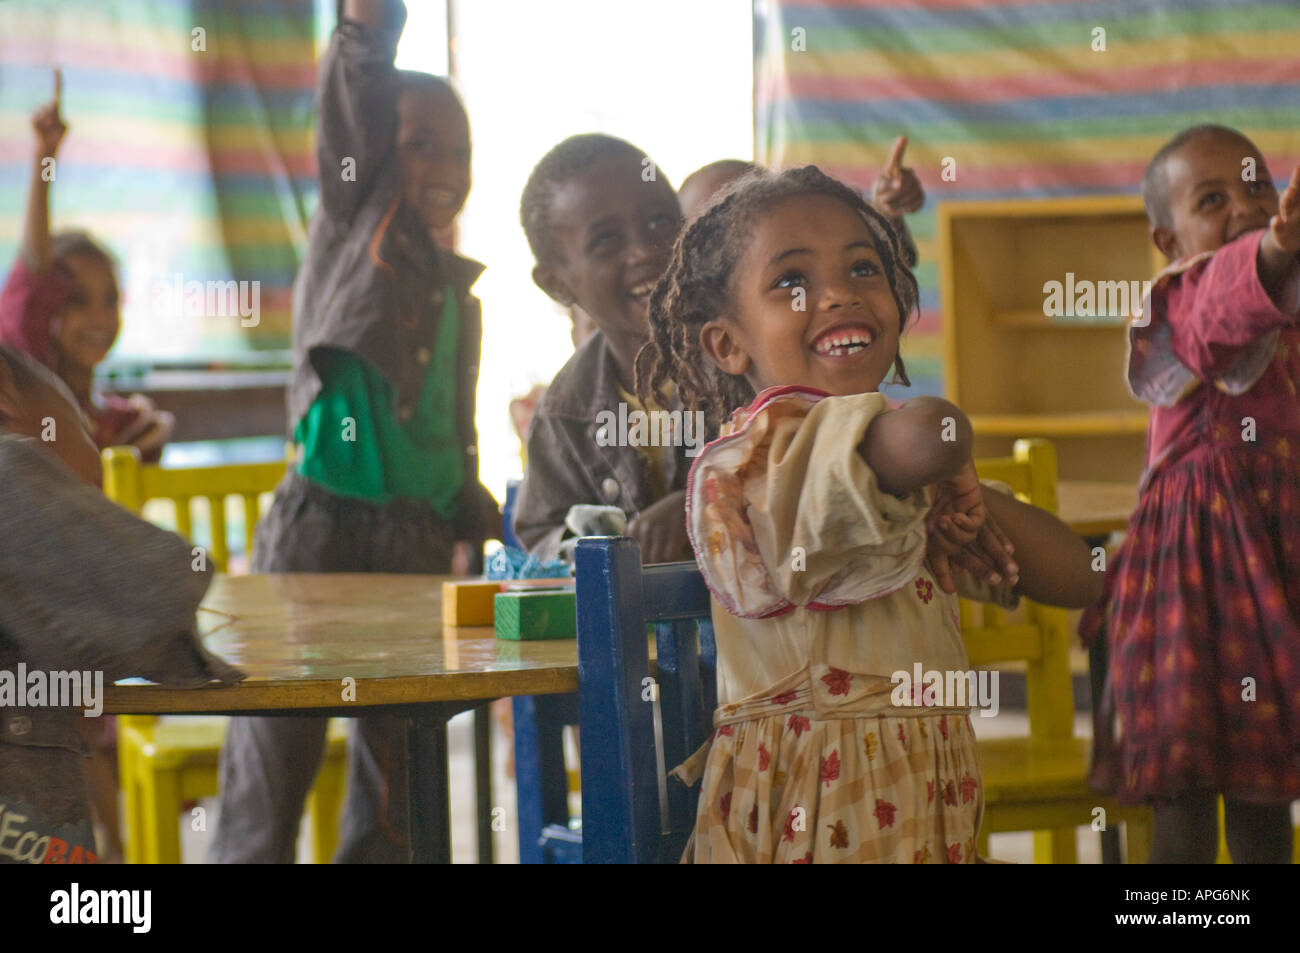 Children smile and put up their hand eagerly to answer a question in the classroom of a charity run school. - Stock Image